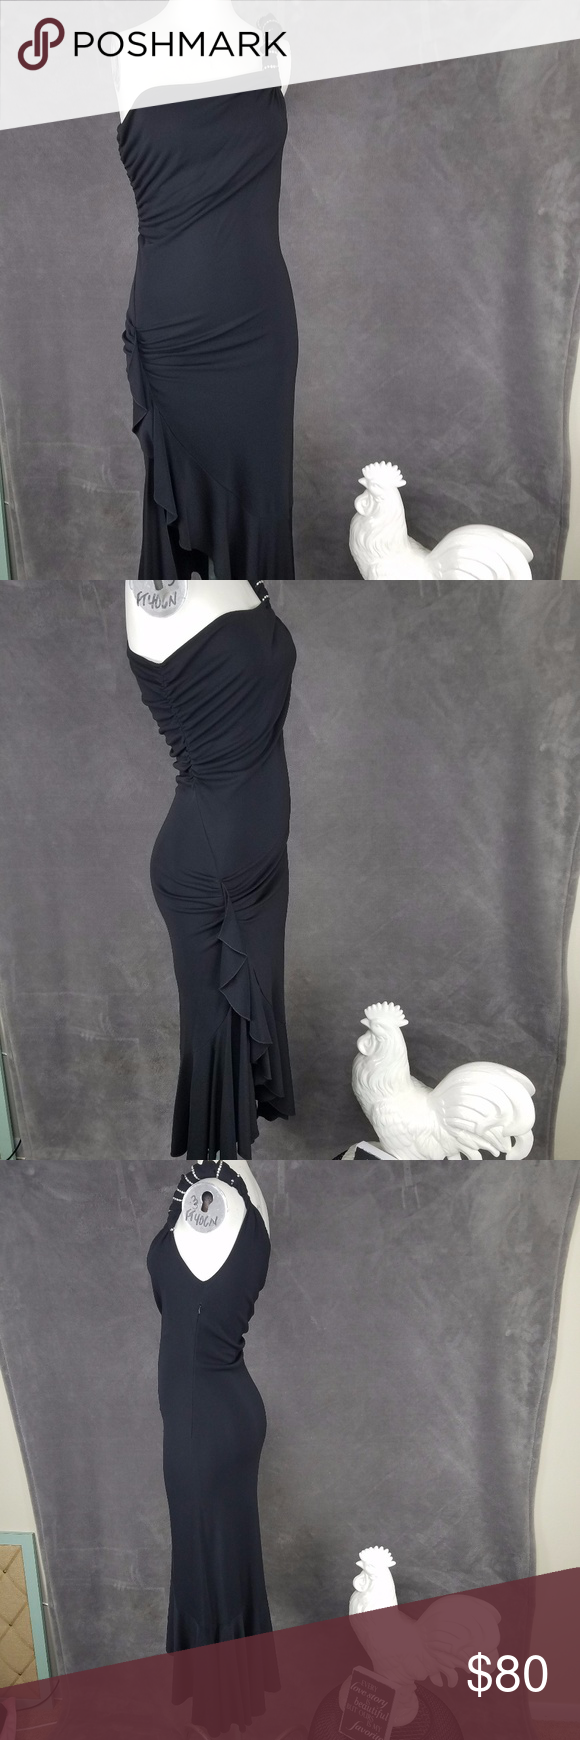 """Janine Black Cocktail Dress Asymmetric High Slit S Janine of London - Black Evening Dress - Asymmetric Hem - High Slit on One Side & Long on the Other - One Shoulder Rhinestone - Cocktail Las Vegas Party Dress - Sz S Semi Sheer Material - Stretchy Flares Out at Bottom  Great Cocktail or Evening Dress.  Perfect for dancing or attending fancy dinner.  Worn a couple of times, great condition.  Please see photos for condition.  Measurements: Armpit to Armpit - 15"""" Short Side Length - 19"""" (From…"""